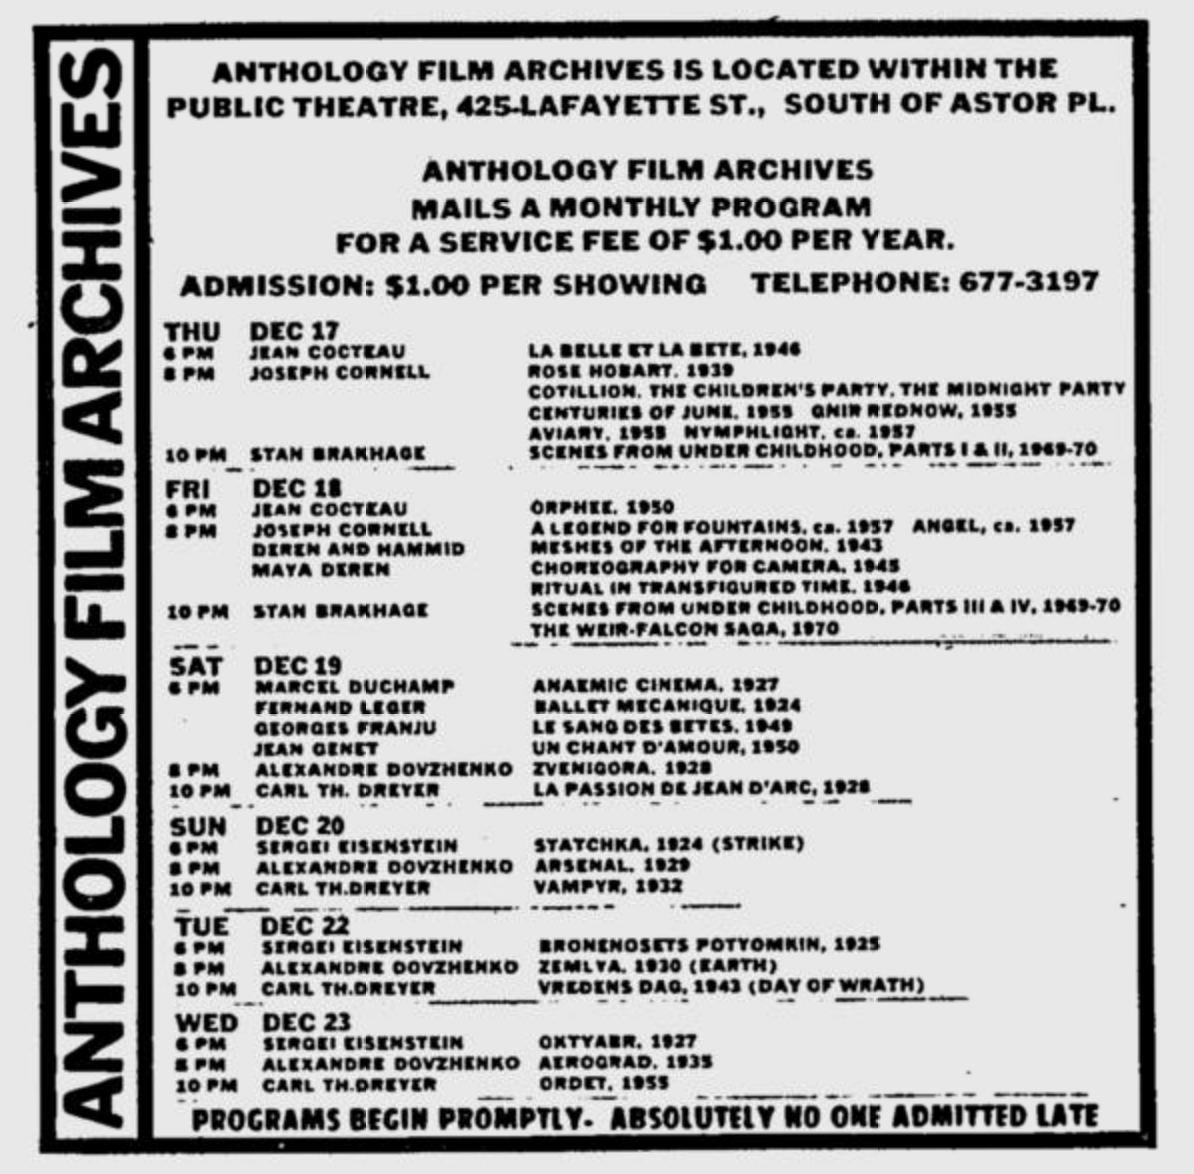 Anthology Film Archives ad in the Village Voice 12.17.70